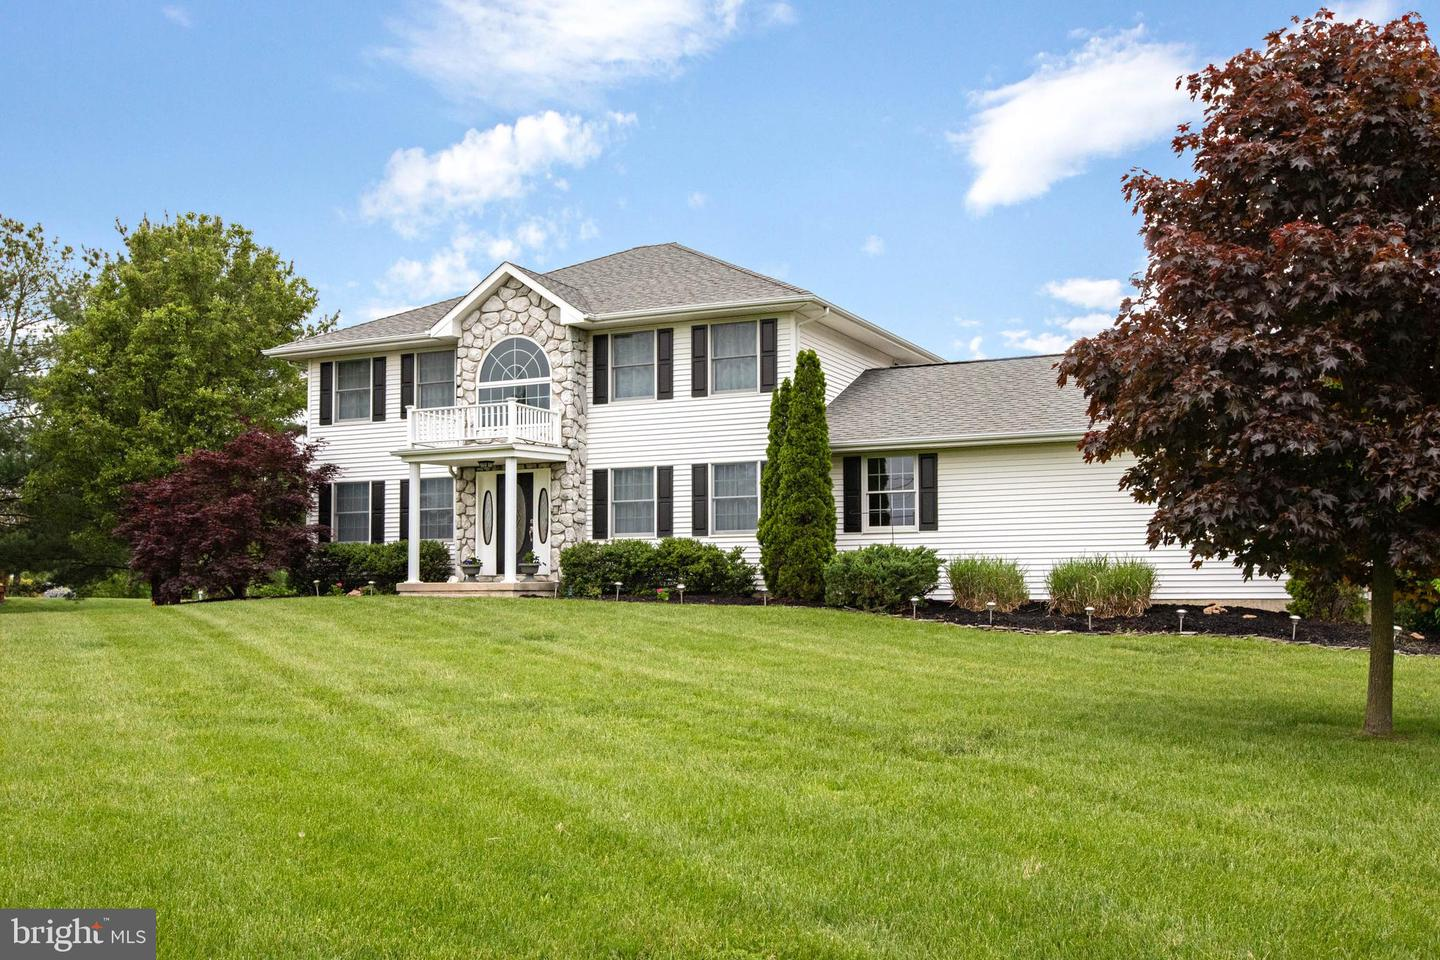 Single Family Home for Sale at Clarksboro, New Jersey 08020 United States